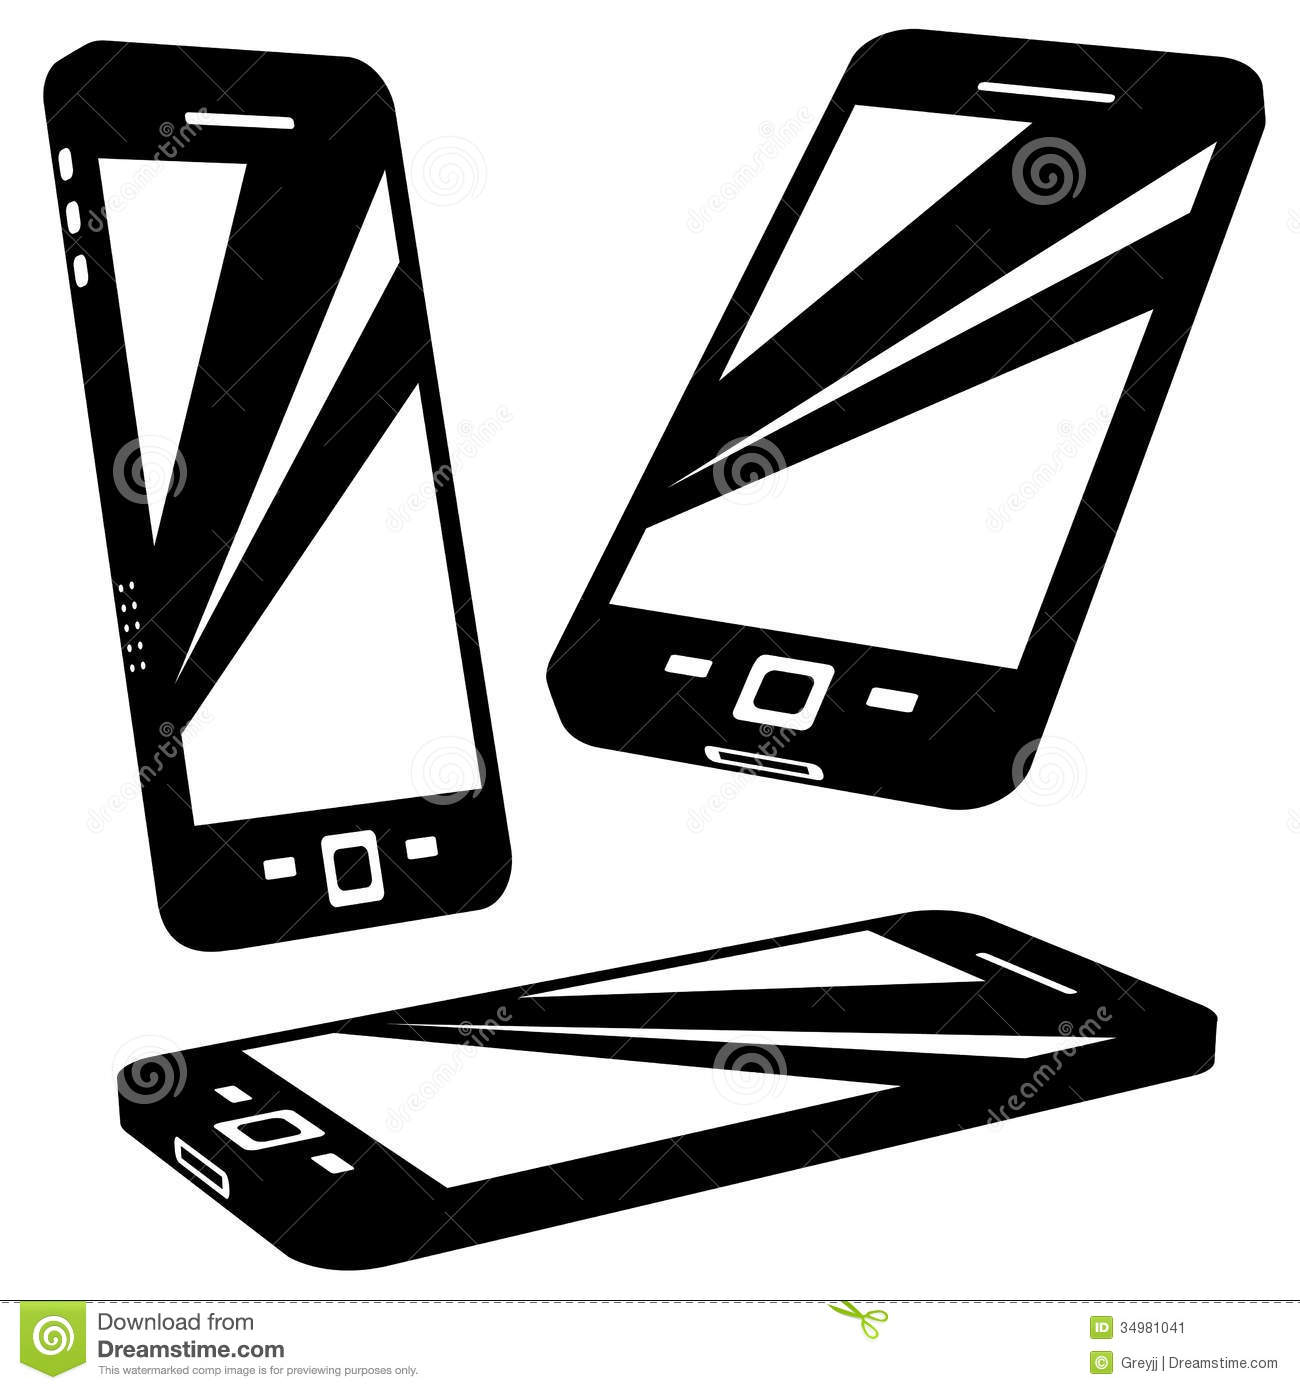 Silhouette Vector Images - Phone Silhouette Clip Art, Cell Phone Icon ... Iphone Silhouette Icon